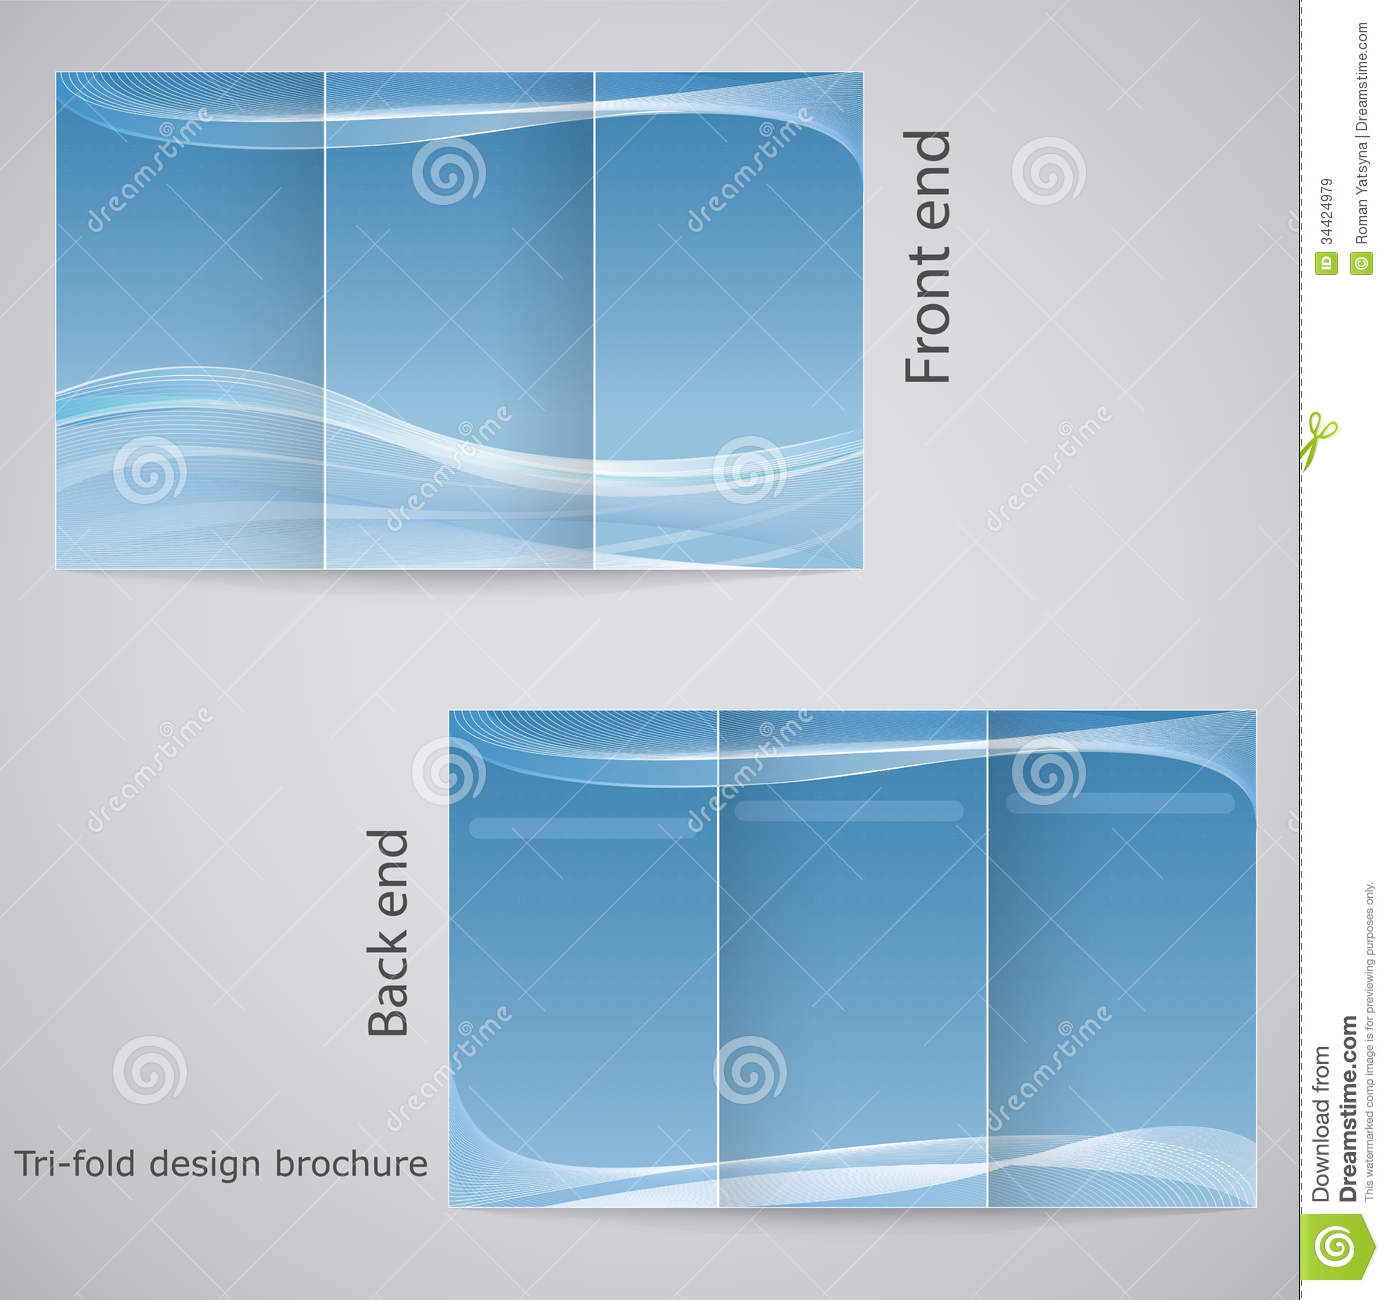 free tri fold brochures templates downloads - 17 tri fold brochure design templates images tri fold